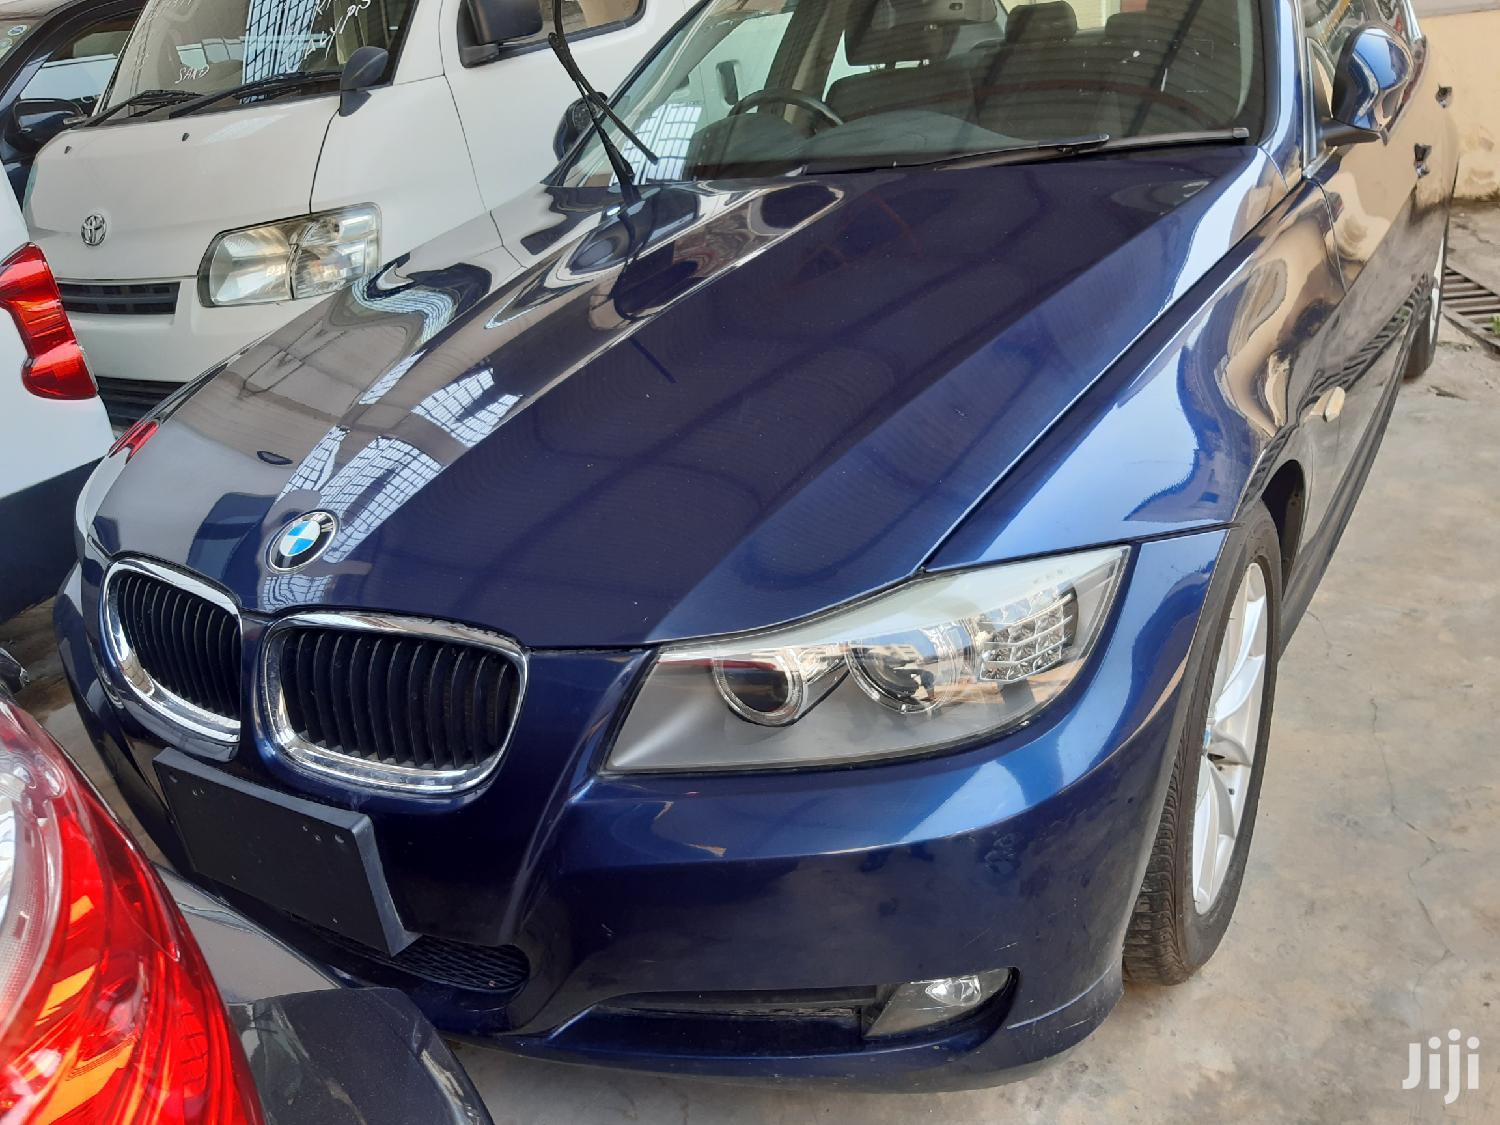 BMW 320i 2012 Blue | Cars for sale in Mvita, Mombasa, Kenya